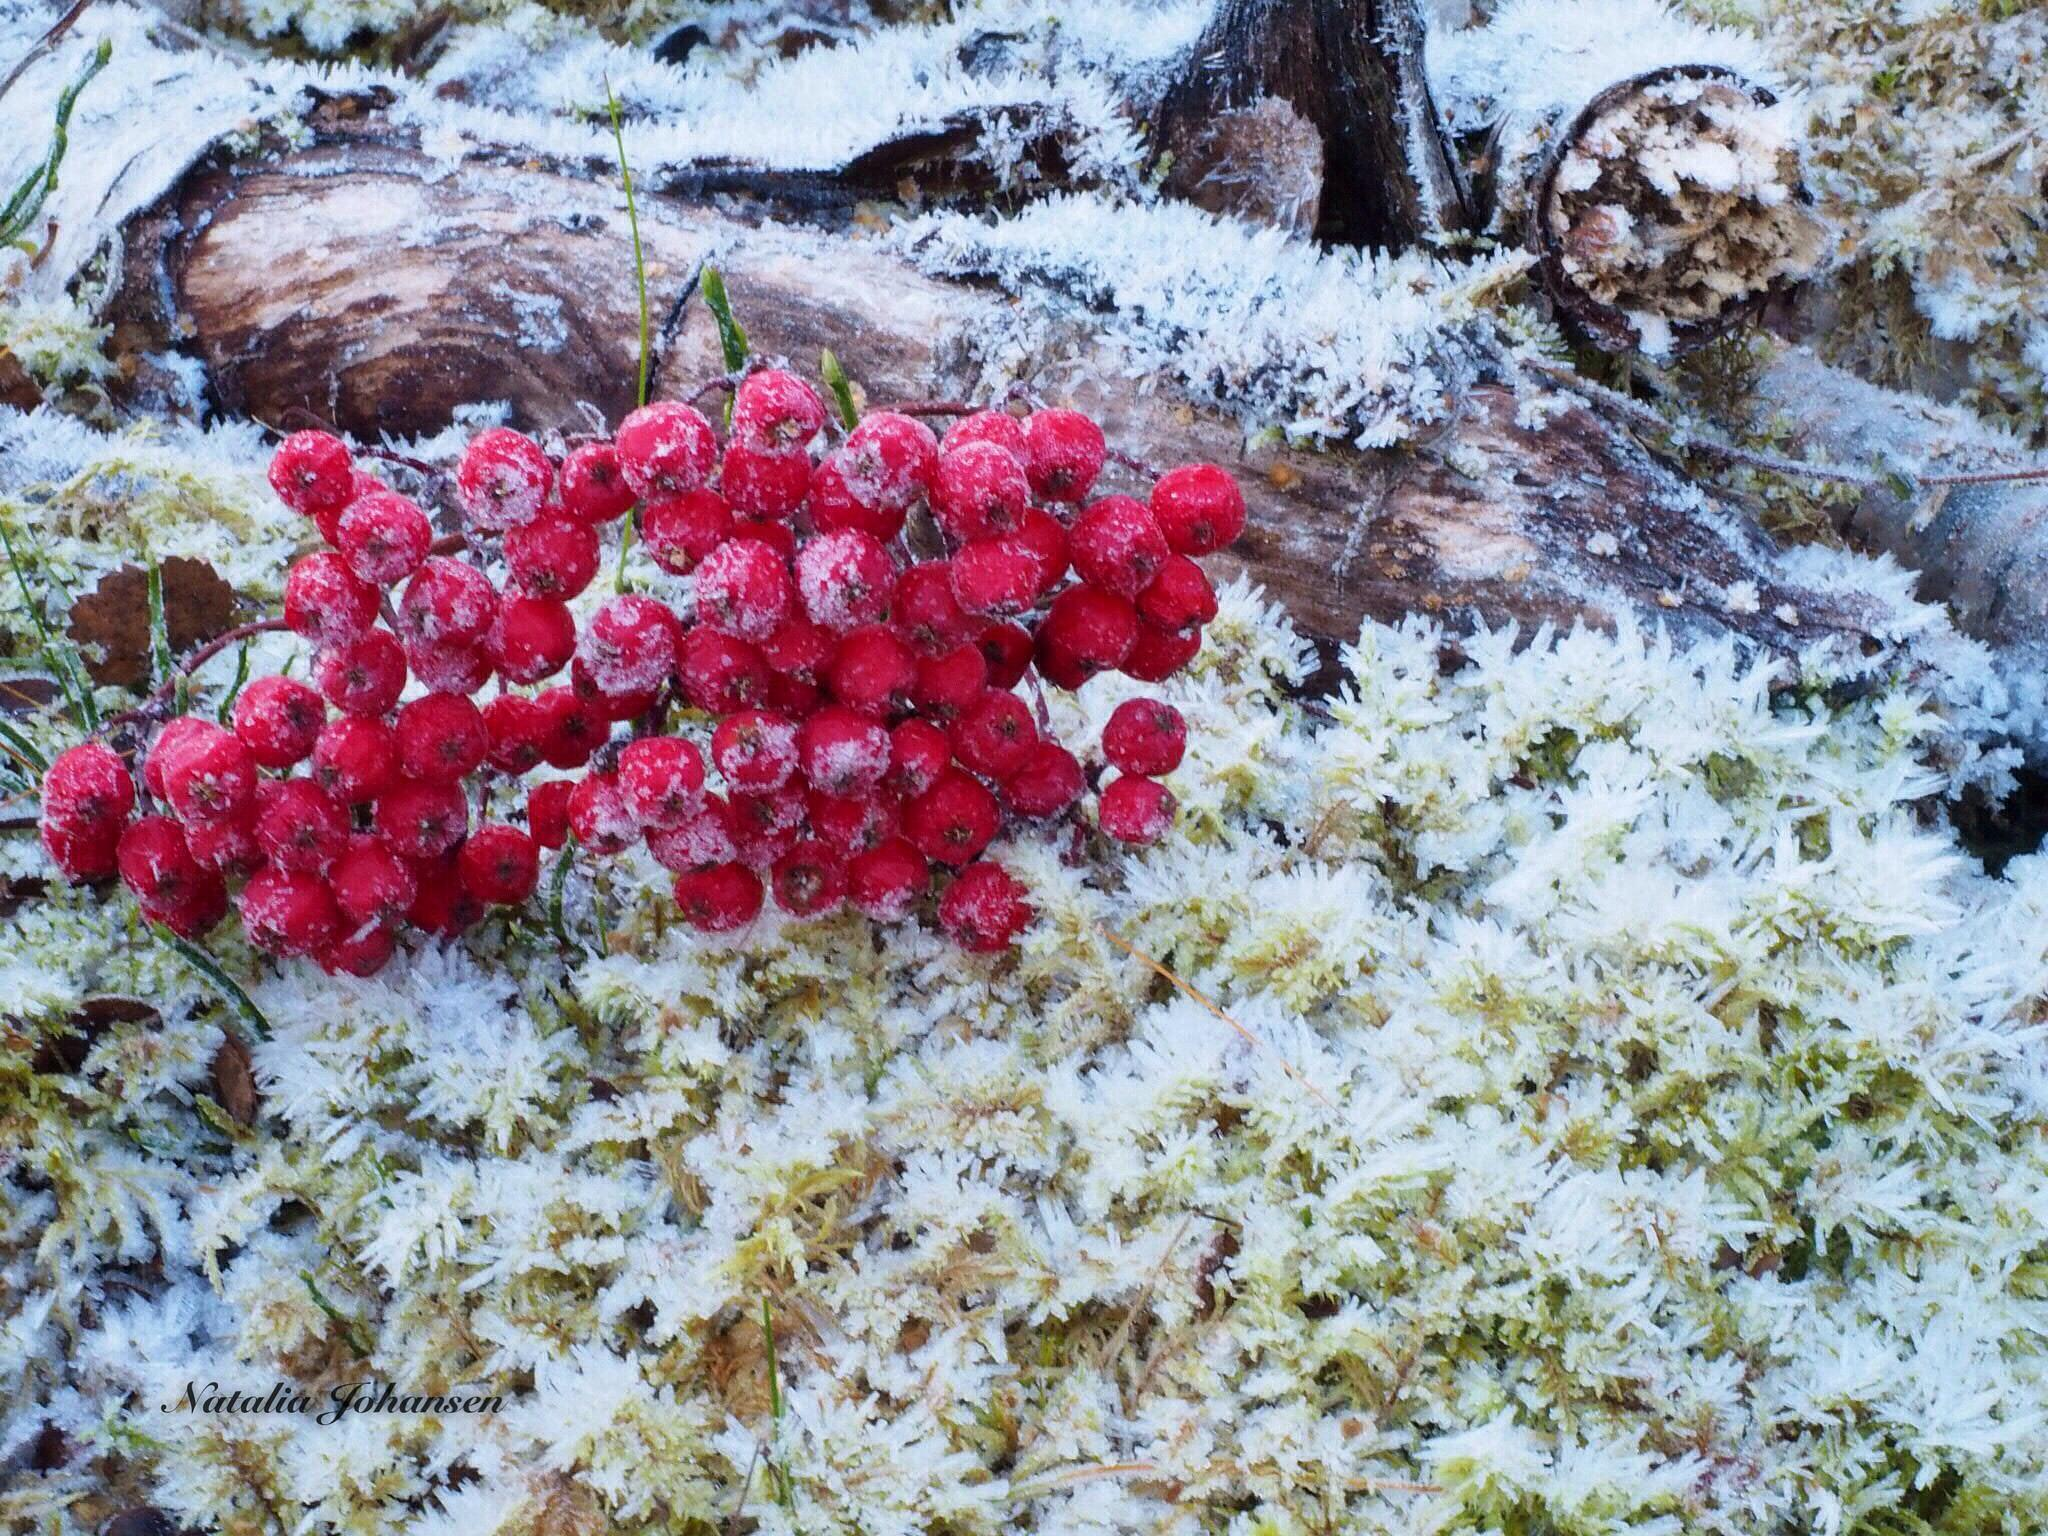 First frost in the forest by natalia.johansen.92